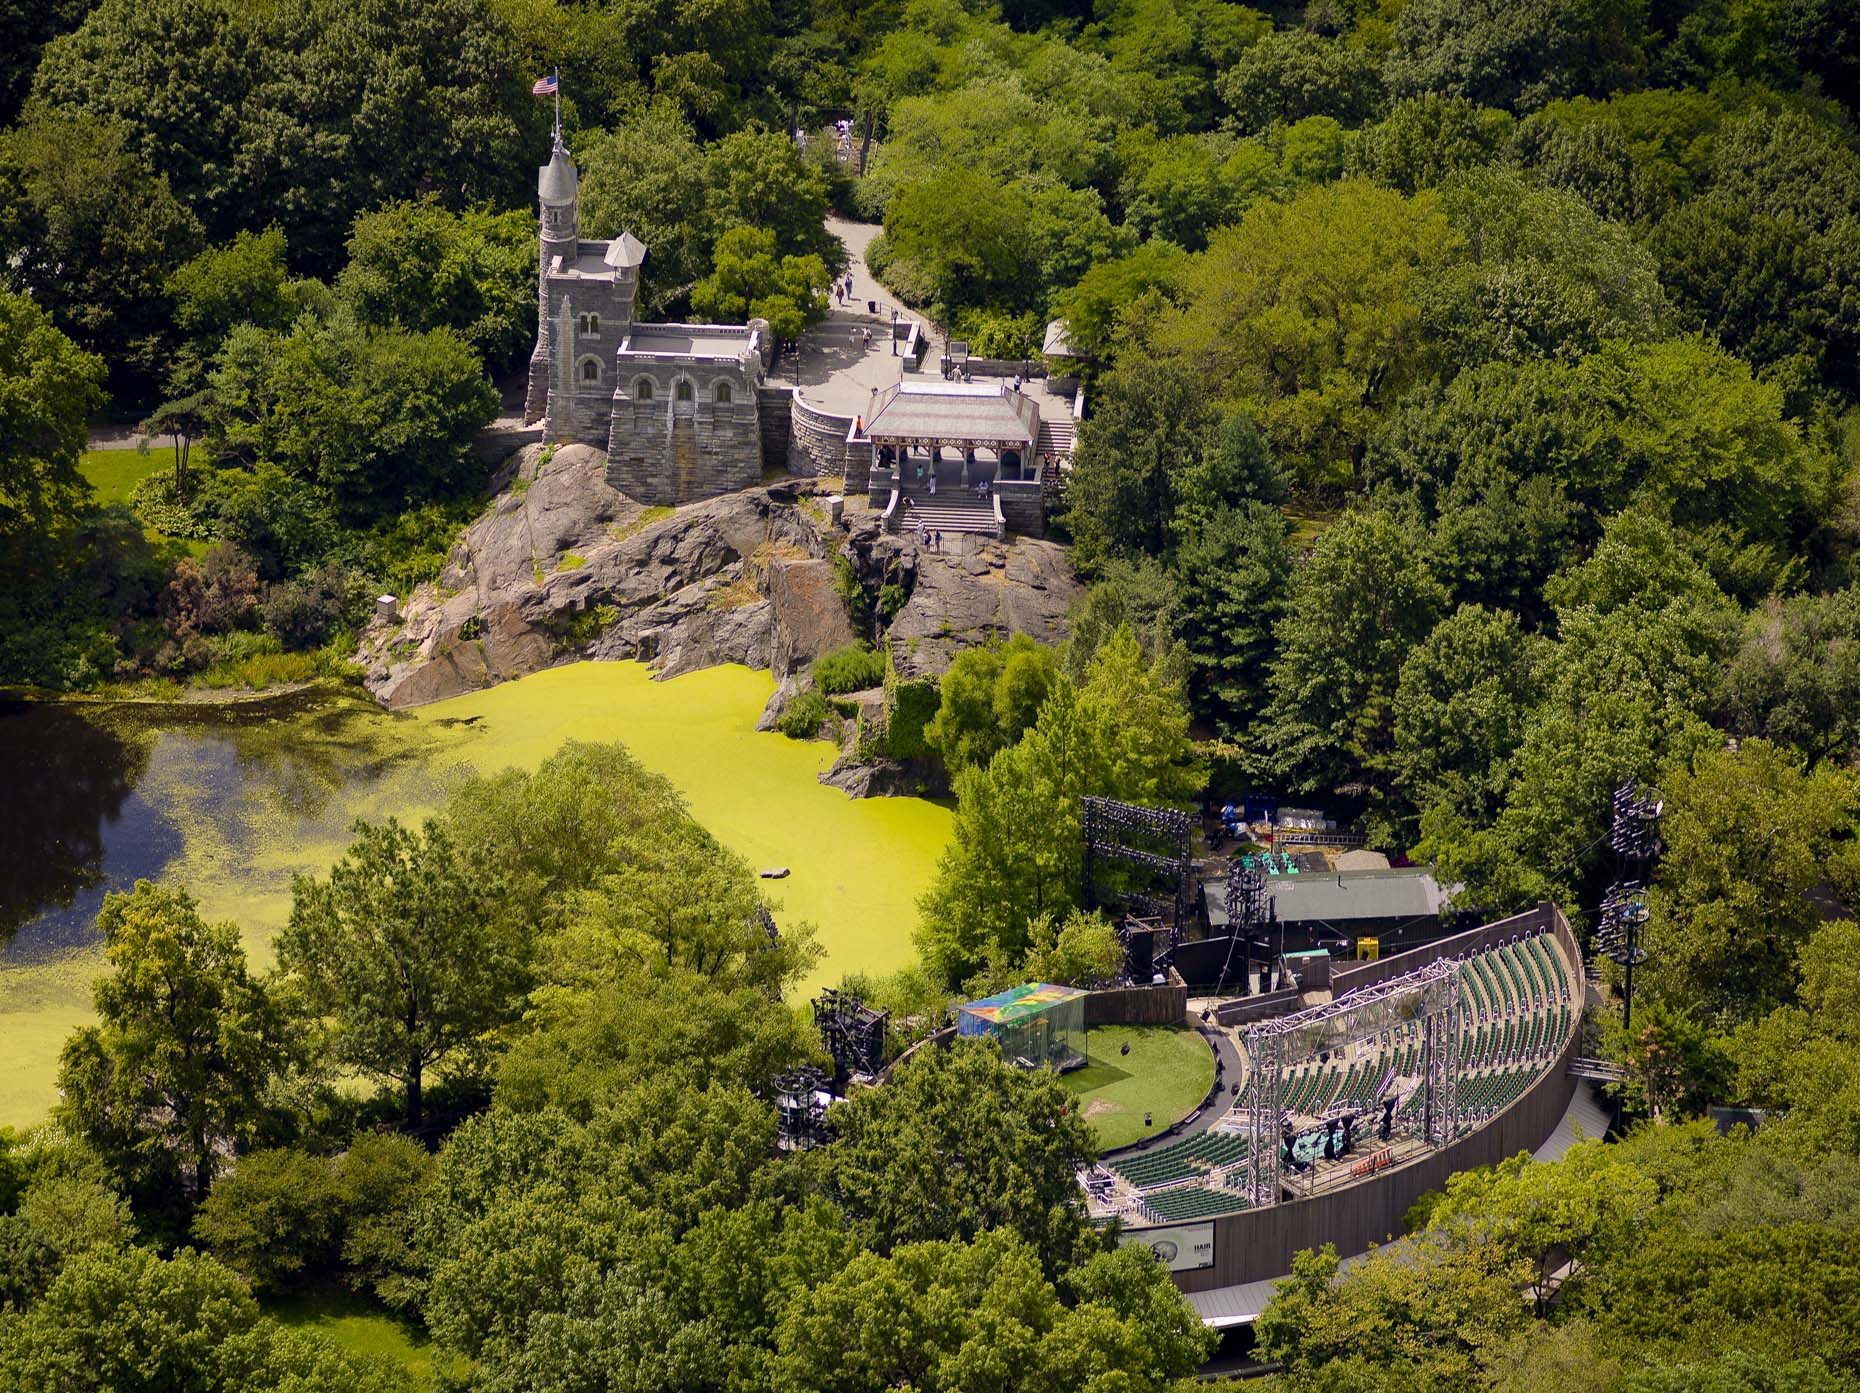 Belvedere Castle: designed in 1869 by Calvert Vaux (co-designer of Central Park.